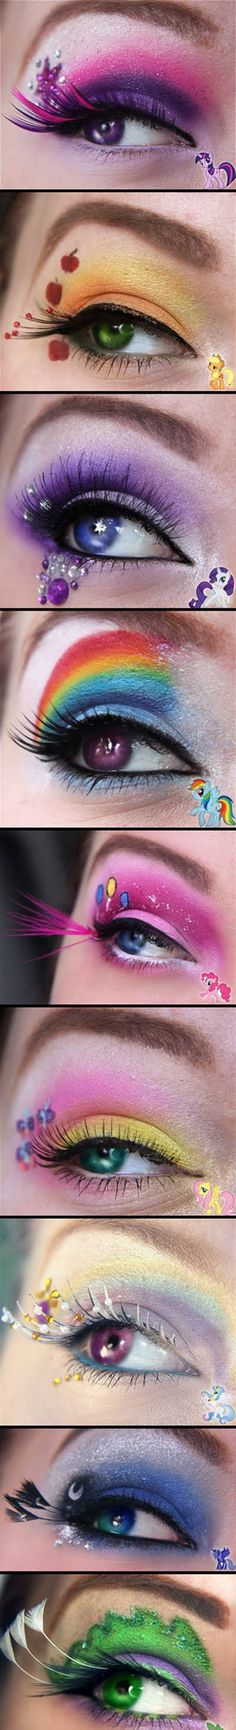 costume ~ eye makeup L: